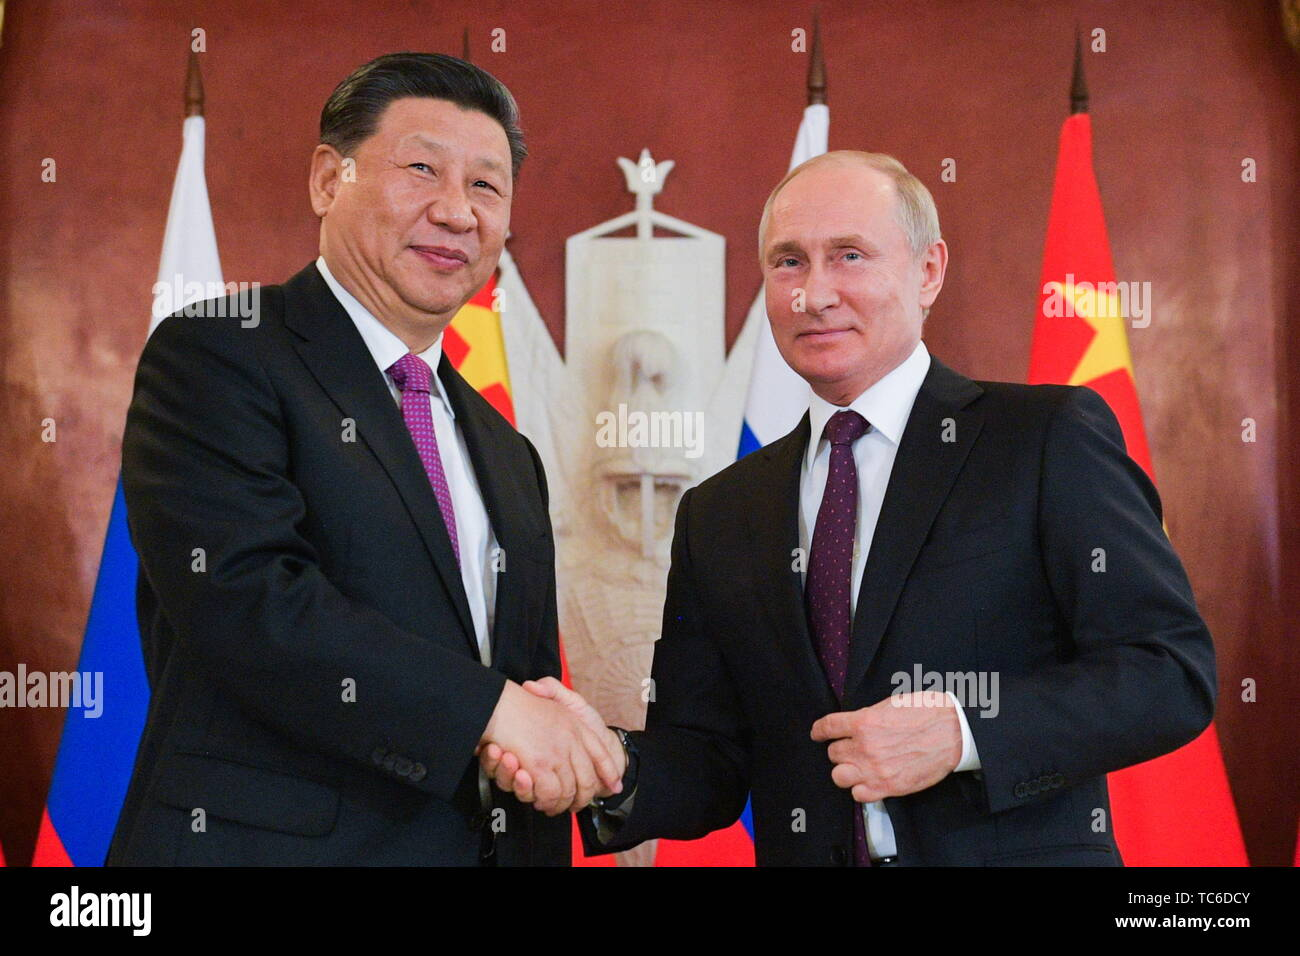 Moscow, Russia. 05th June, 2019. MOSCOW, RUSSIA - JUNE 5, 2019: China's President Xi Jinping (L) and Russia's President Vladimir Putin shake hands after a statement for the press following Russian-Chinese talks at the Moscow Kremlin. Alexei Druzhinin/Russian Presidential Press and Information Office/TASS Credit: ITAR-TASS News Agency/Alamy Live News - Stock Image